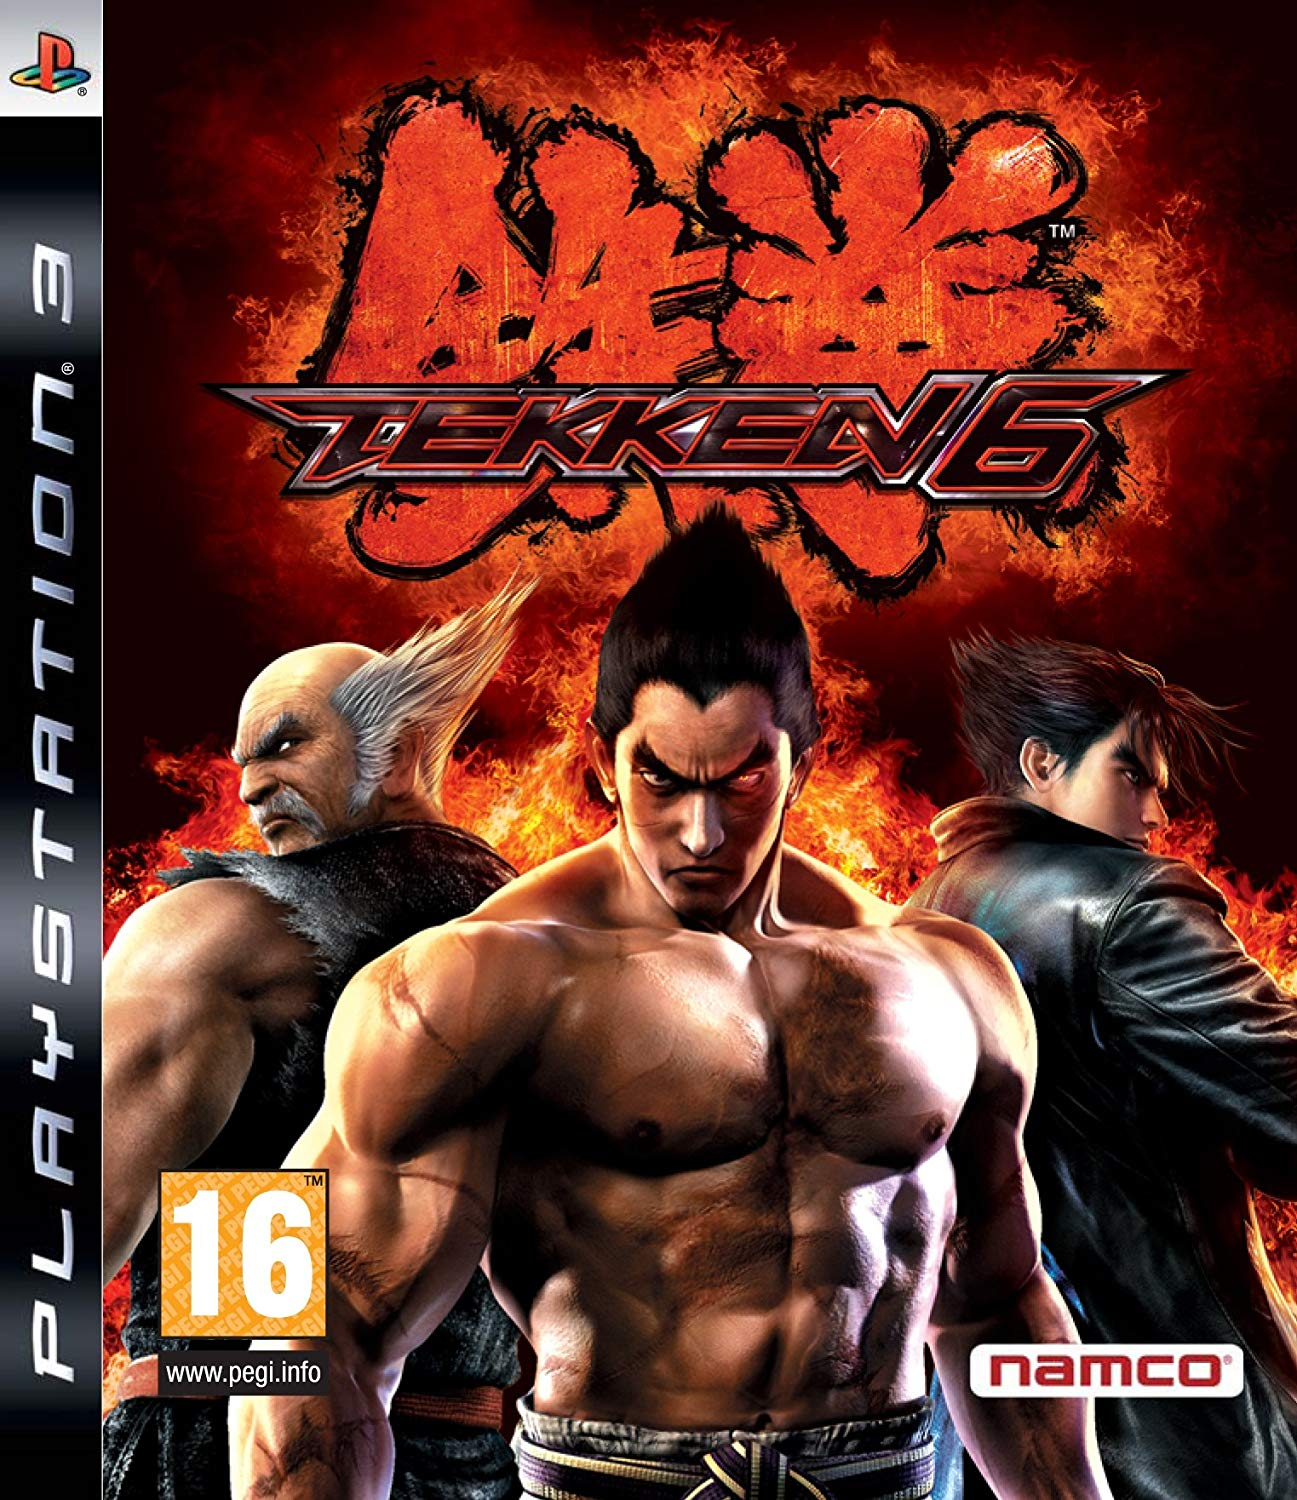 Why I Think Tekken 6 Is Better Than Tekken 7